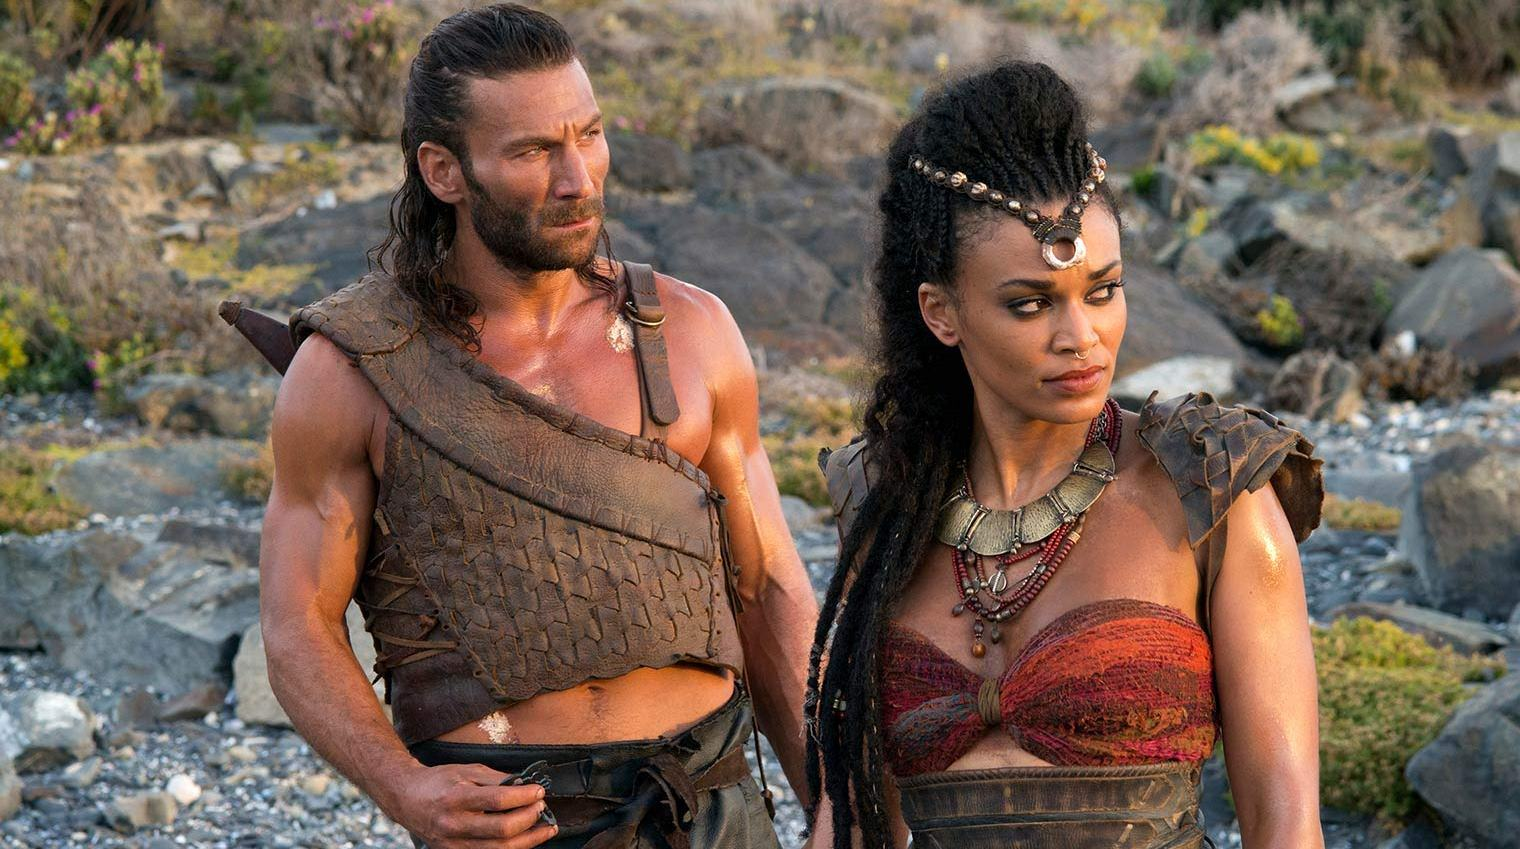 Zach McGowan as Mathayus and Pearl Thusi as Tala in Scorpion King: Book of Souls (2018)